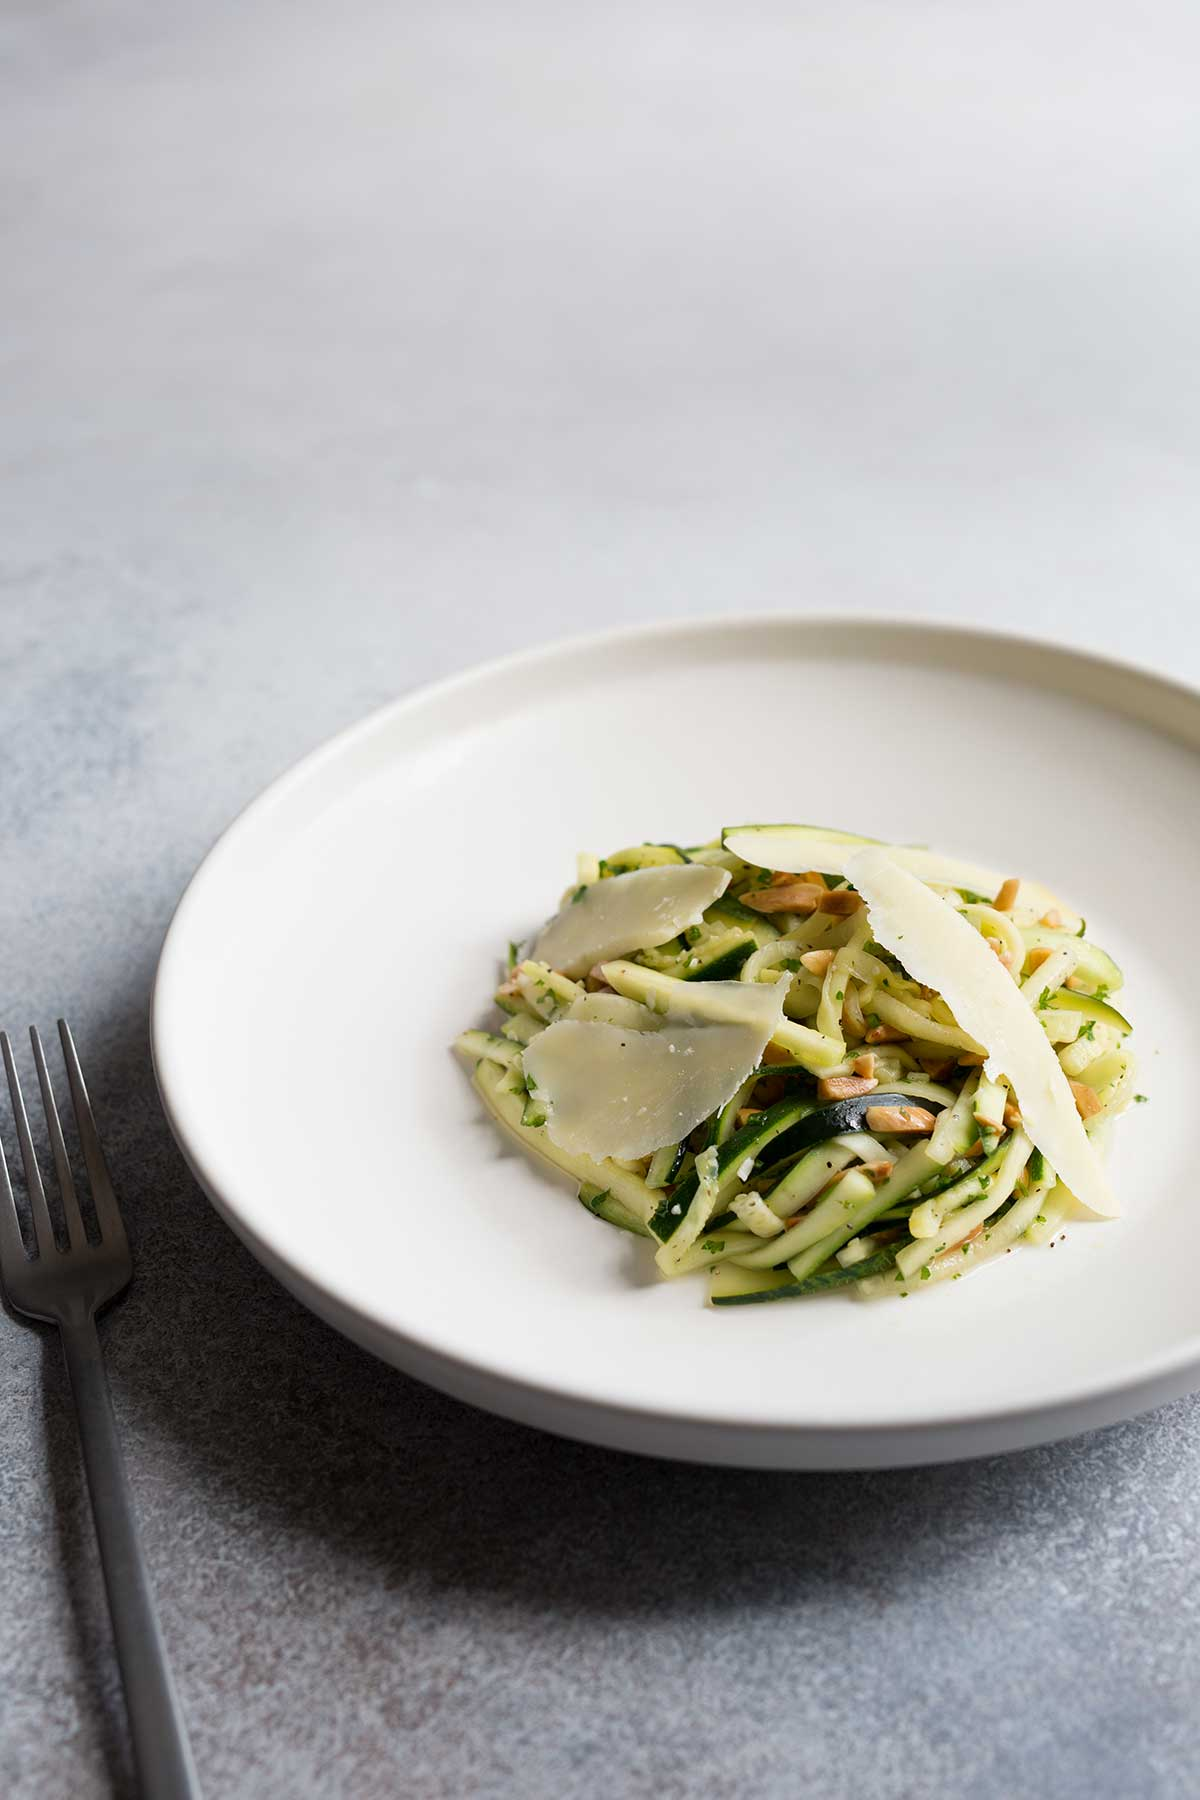 Zucchini salad topped with shaved cheese